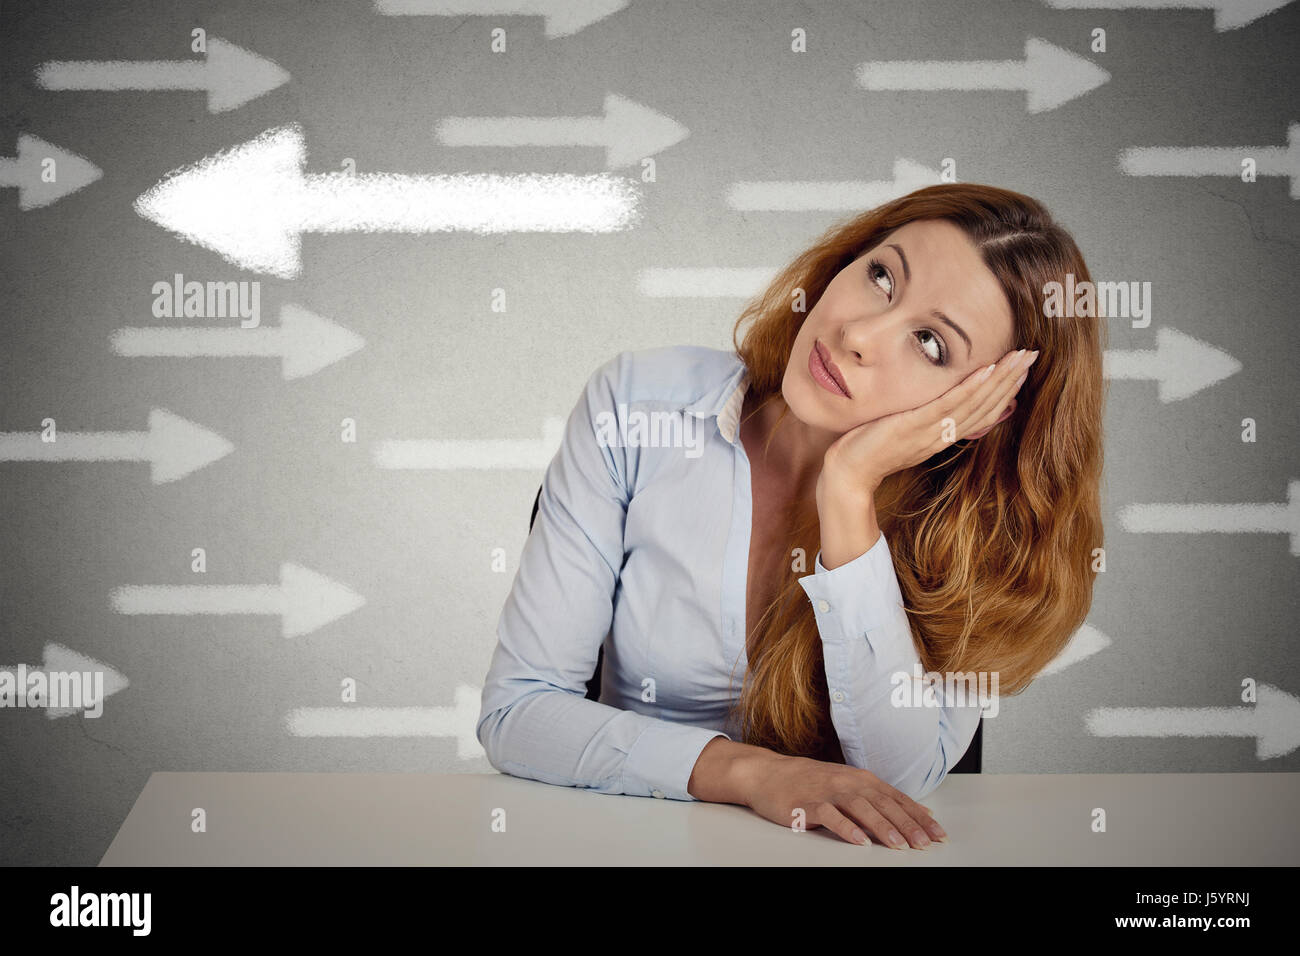 Thoughtful woman taking a chance going against flow. Thoughtful businesswoman sitting at table isolated on grey - Stock Image